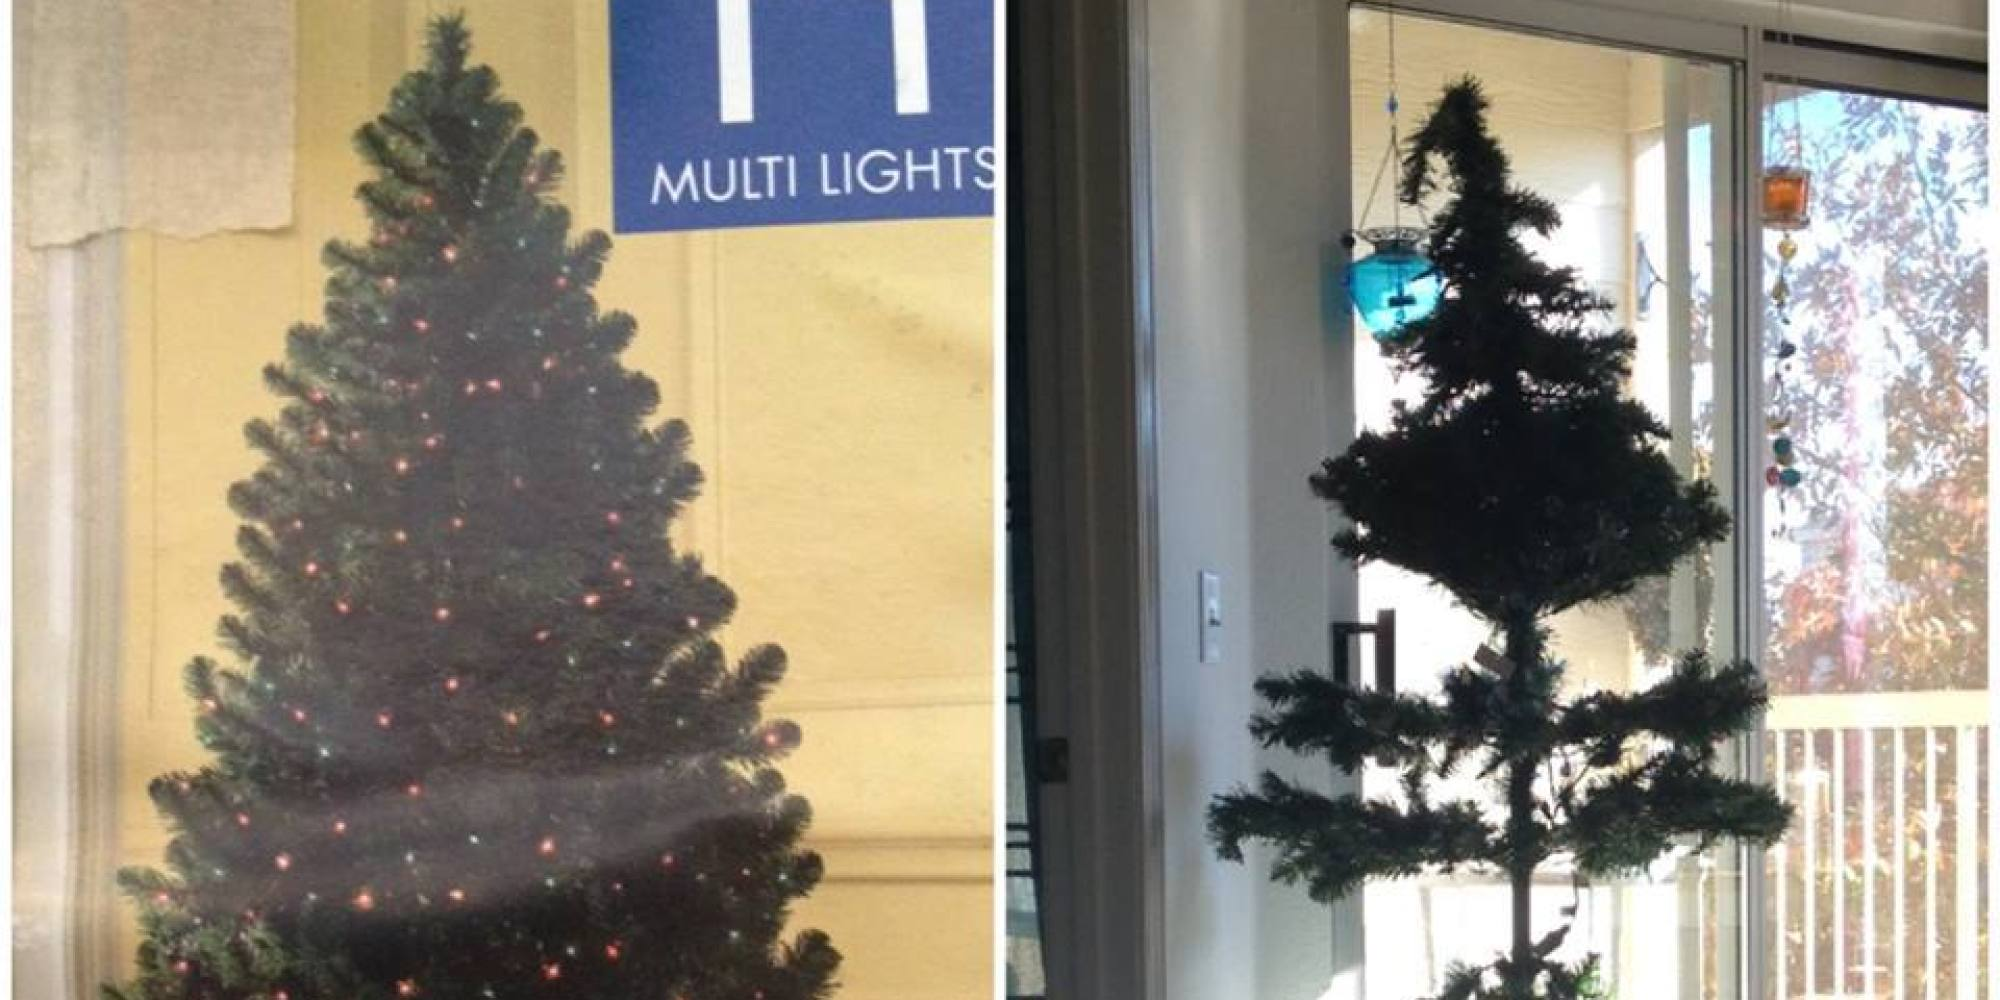 The World's Most Disappointing Christmas Tree (PICTURE